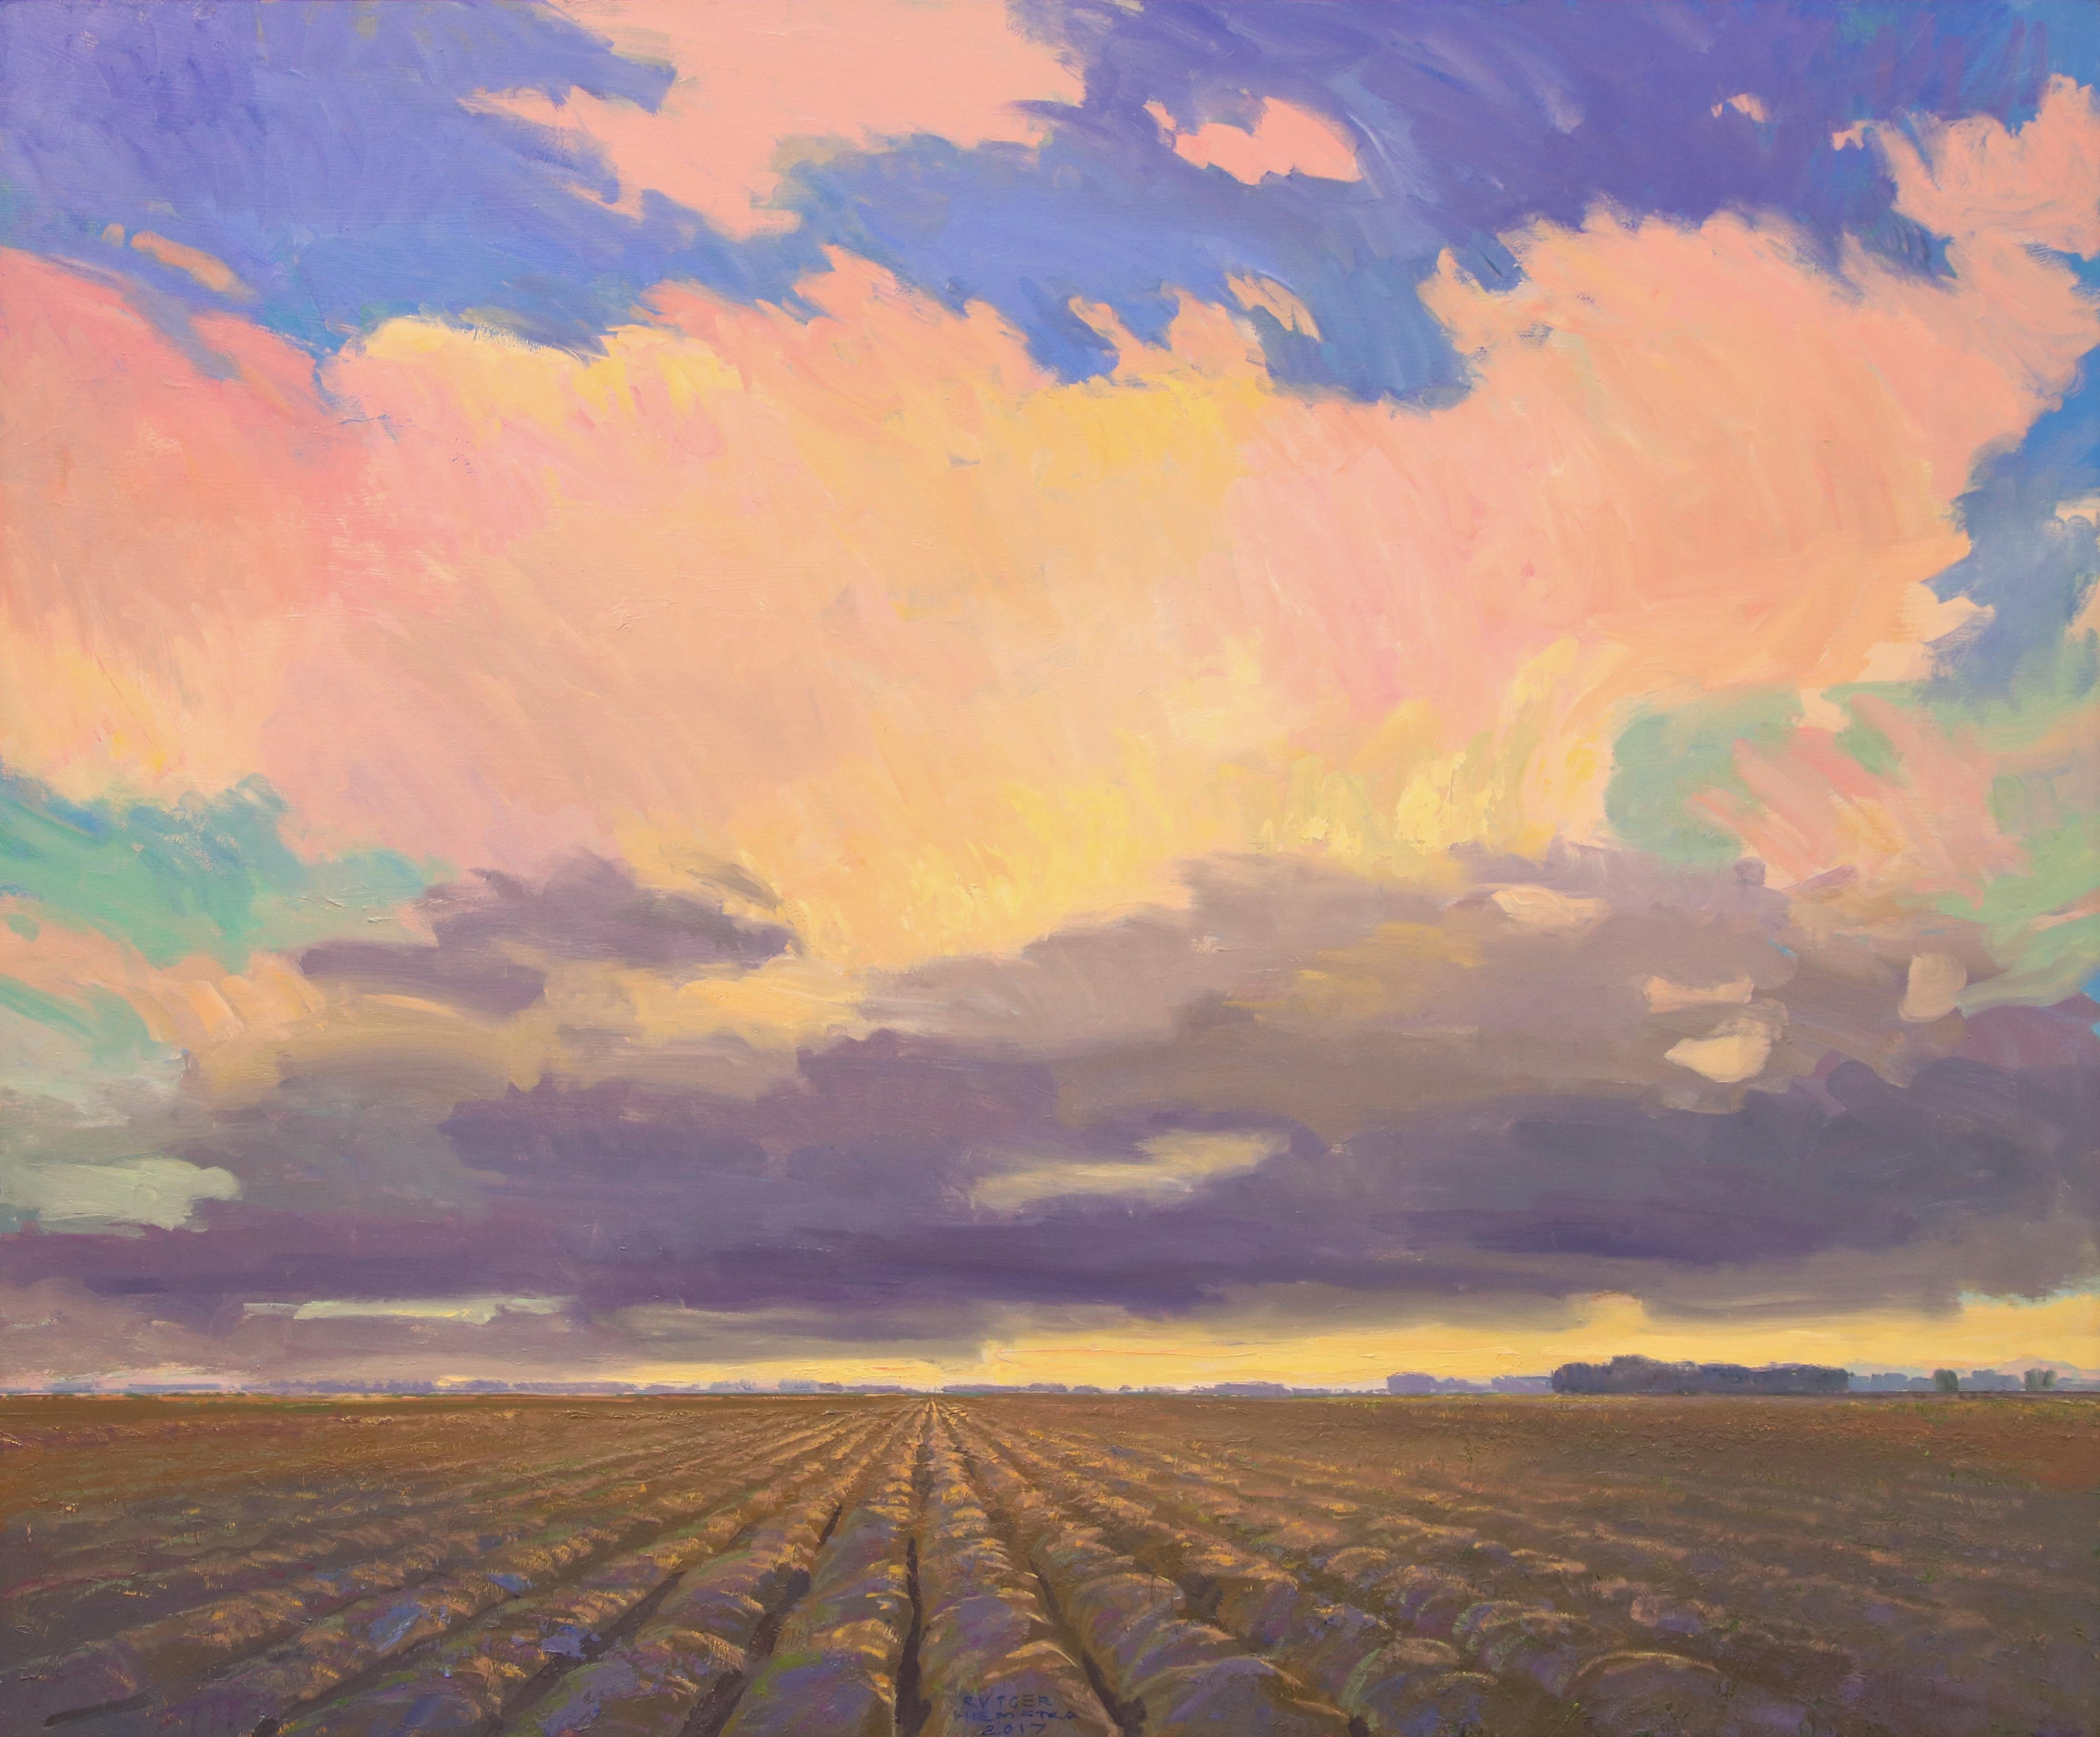 Evening Sky - 21st Century Contemporary Oil Painting by Rutger Hiemstra